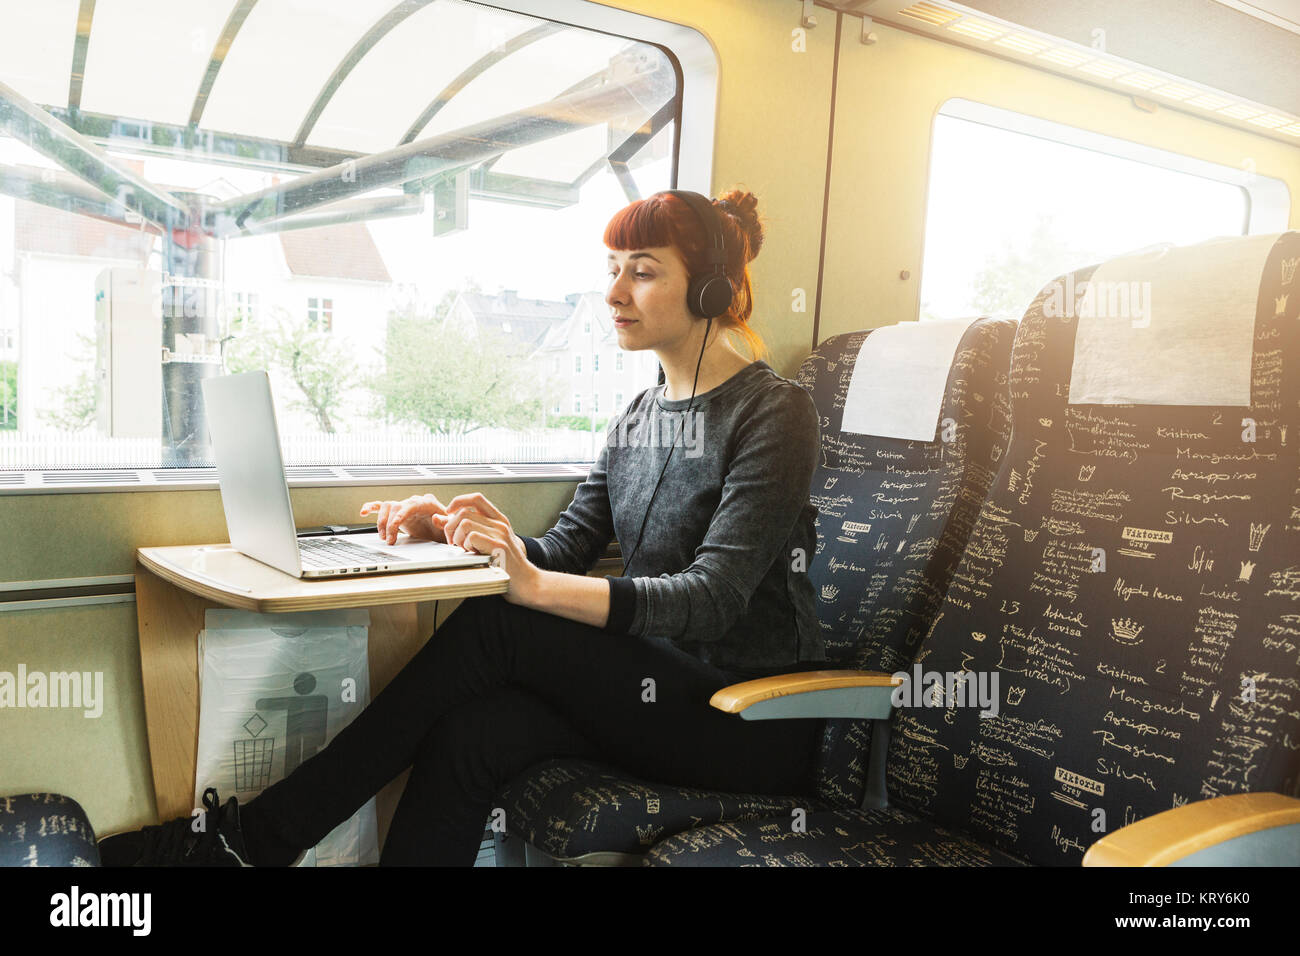 Woman using laptop on train - Stock Image